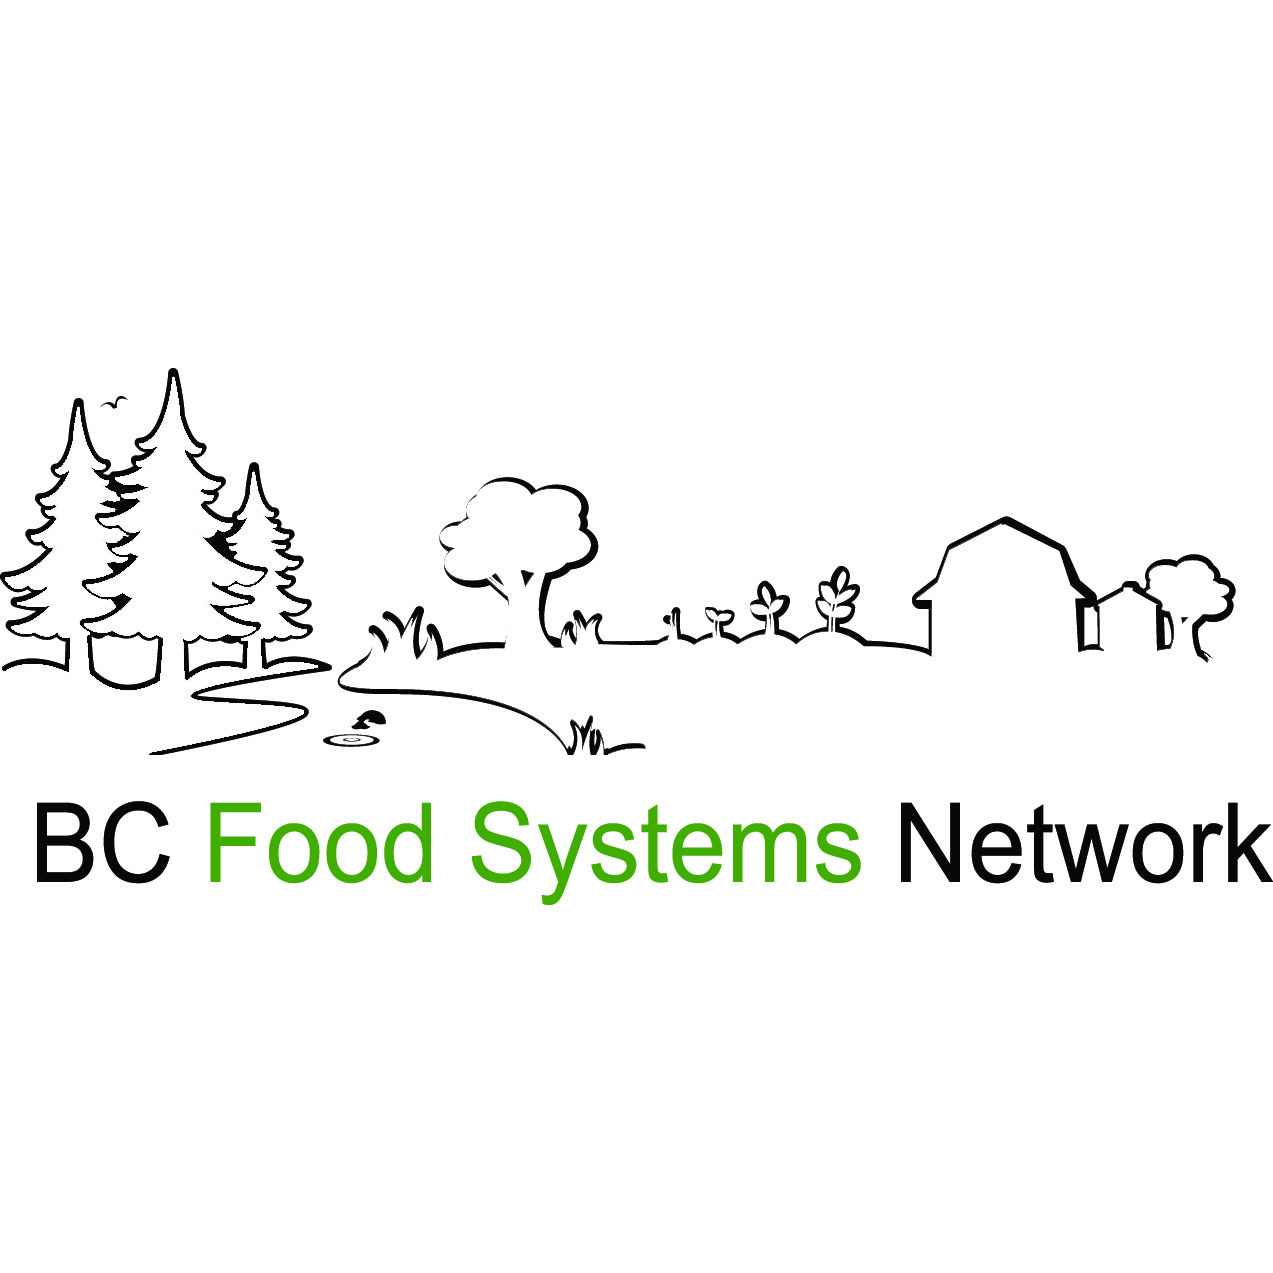 BC Food Systems Network 2.jpg